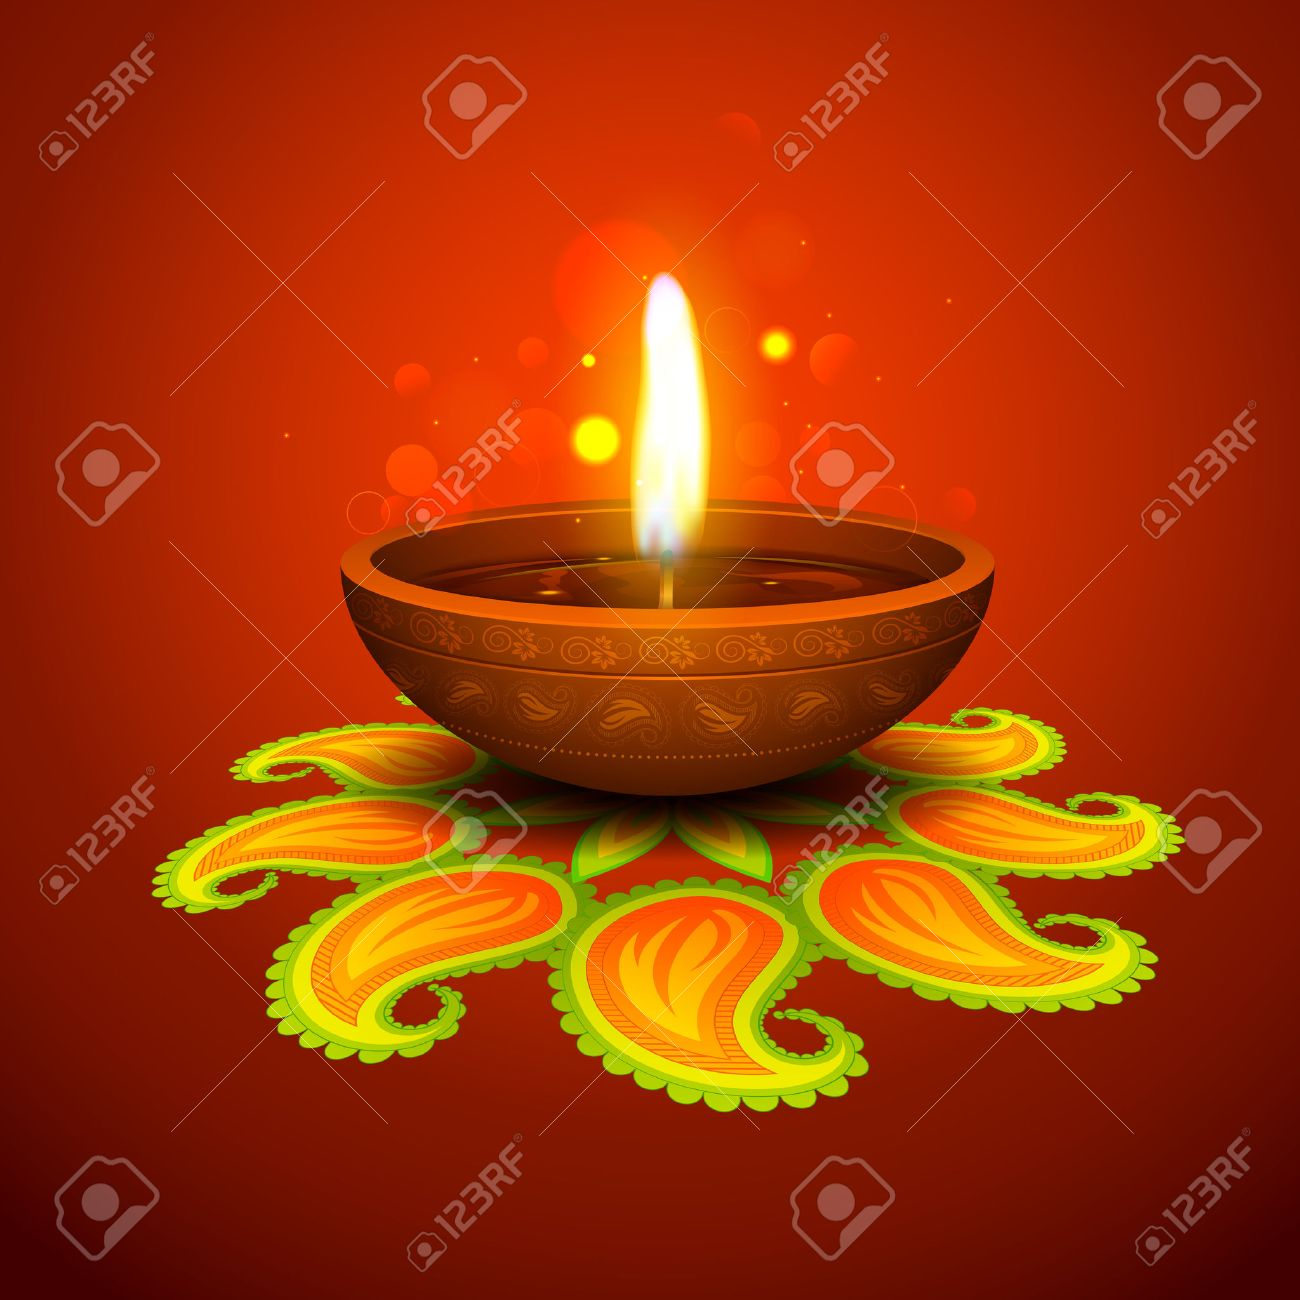 Illustration Of Burning Diya On Diwali Holiday Background Royalty 1300x1300